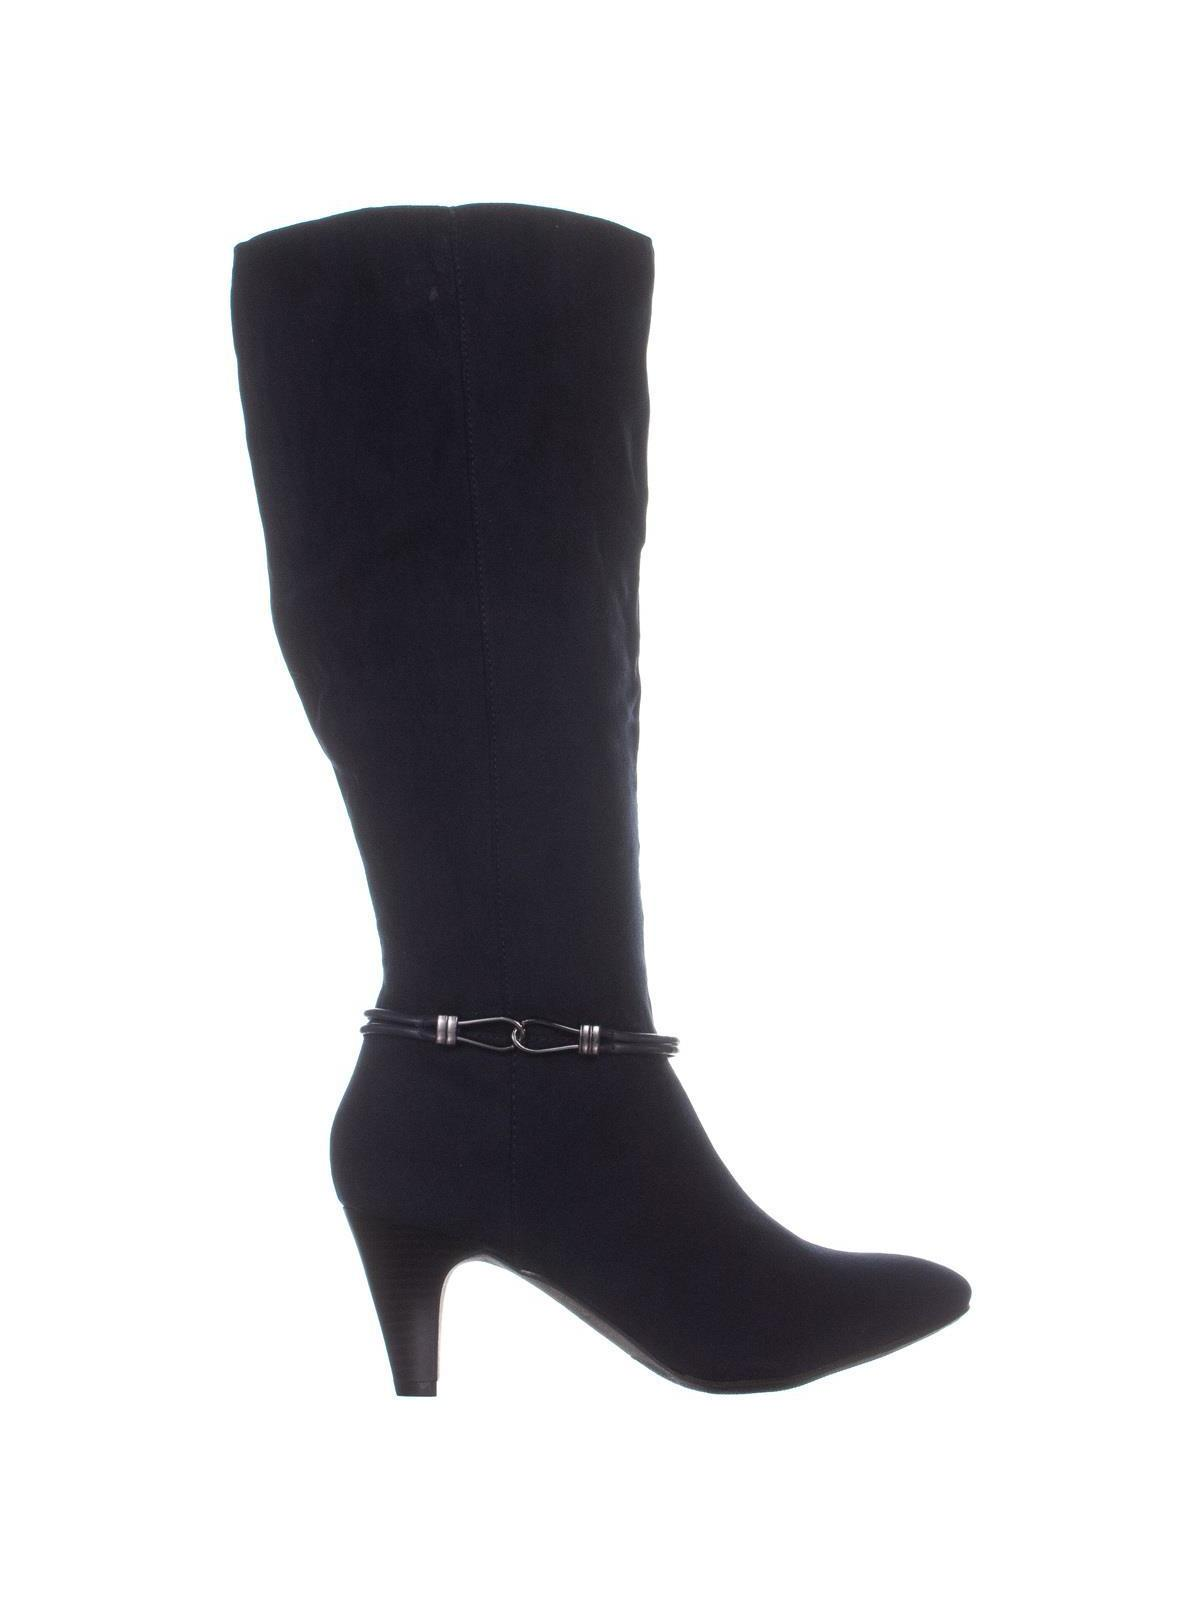 afab43268d6 KS35 - Womens KS35 Hollee Wide Calf Knee High Boots